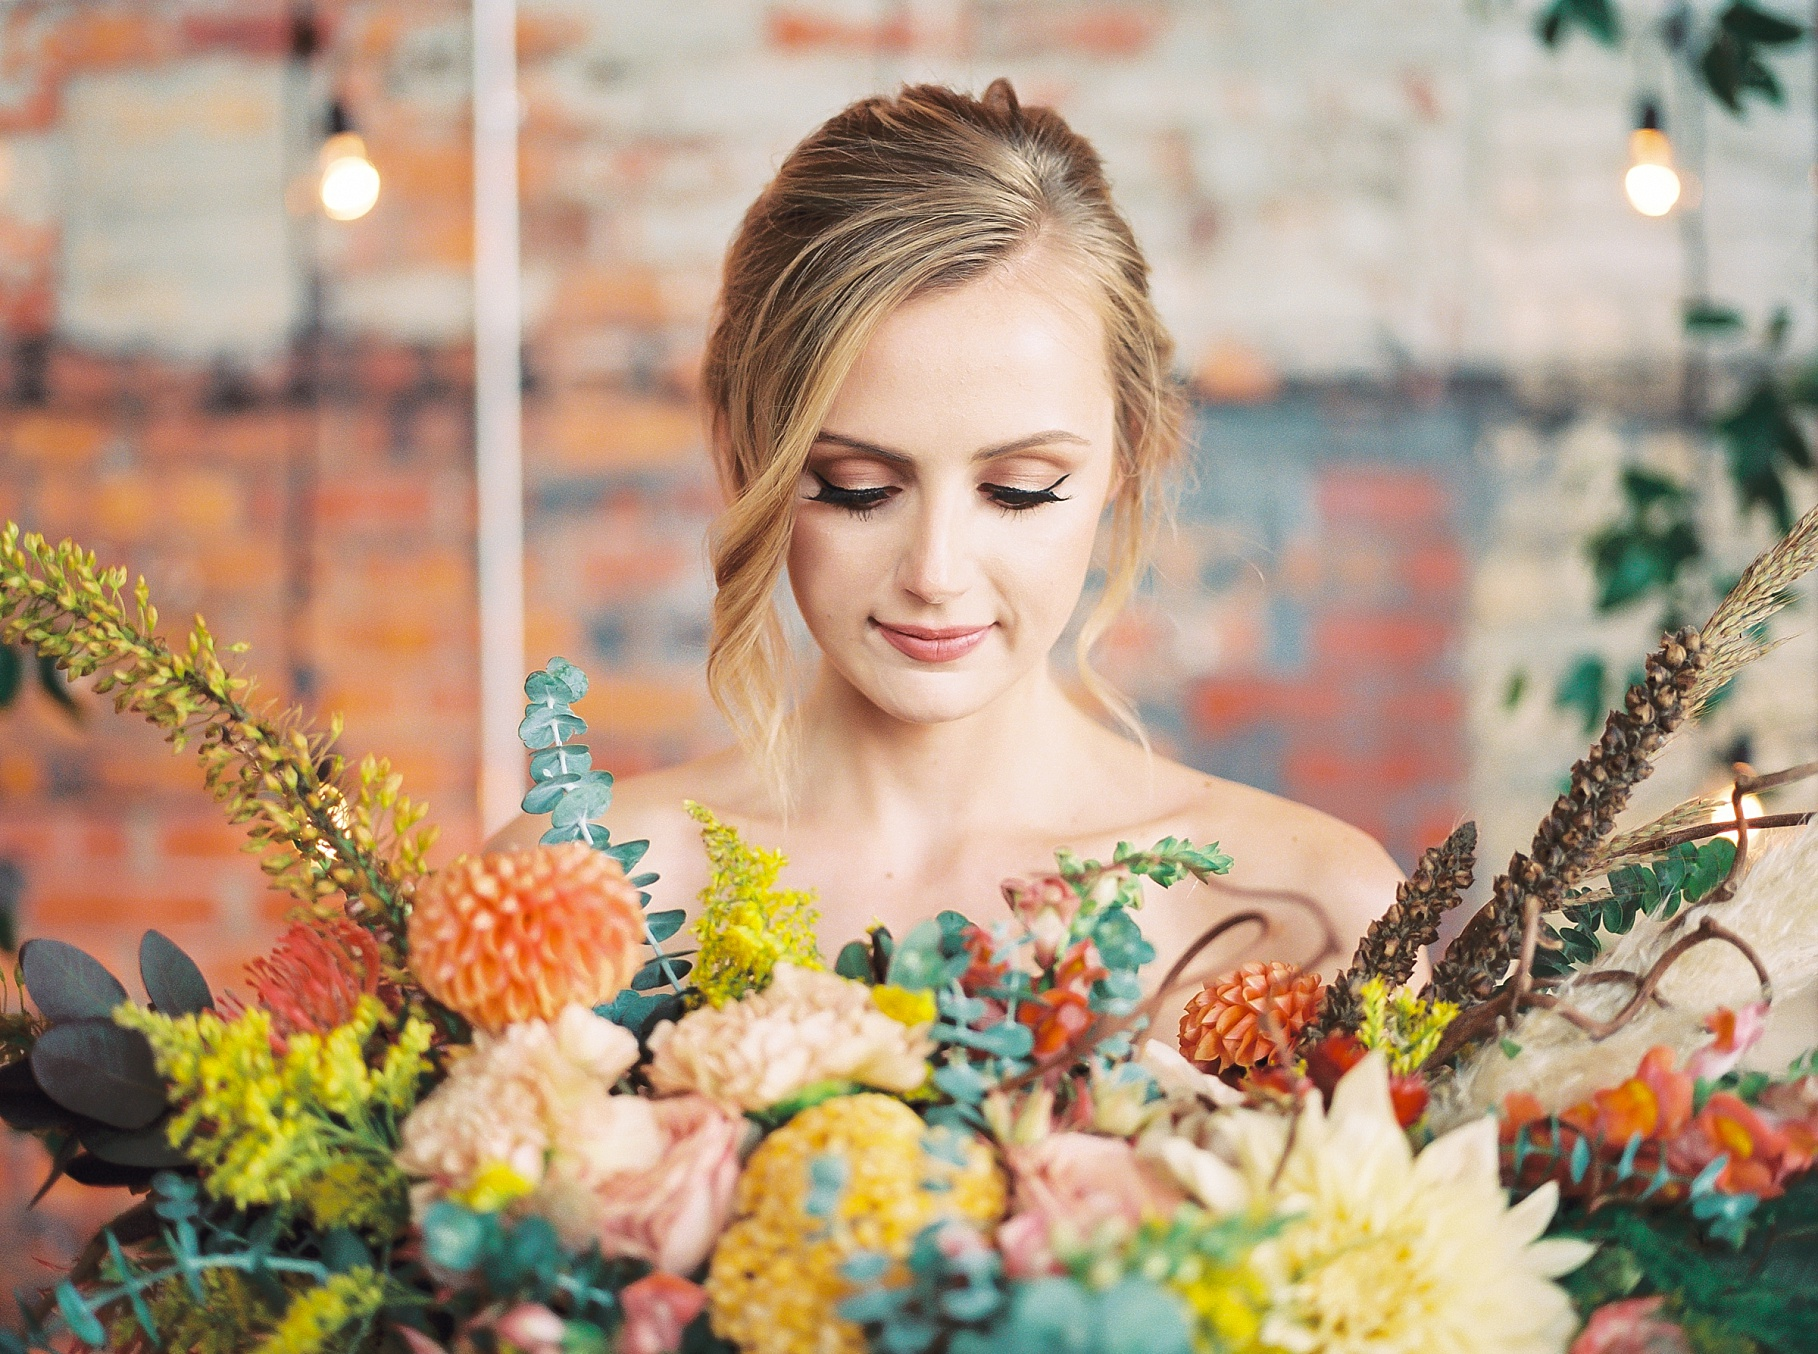 Urban Romance Wedding with Copper Accents at The Millbottom by Kelsi Kliethermes Photography Best Columbia Missouri Wedding Photographer_0005.jpg